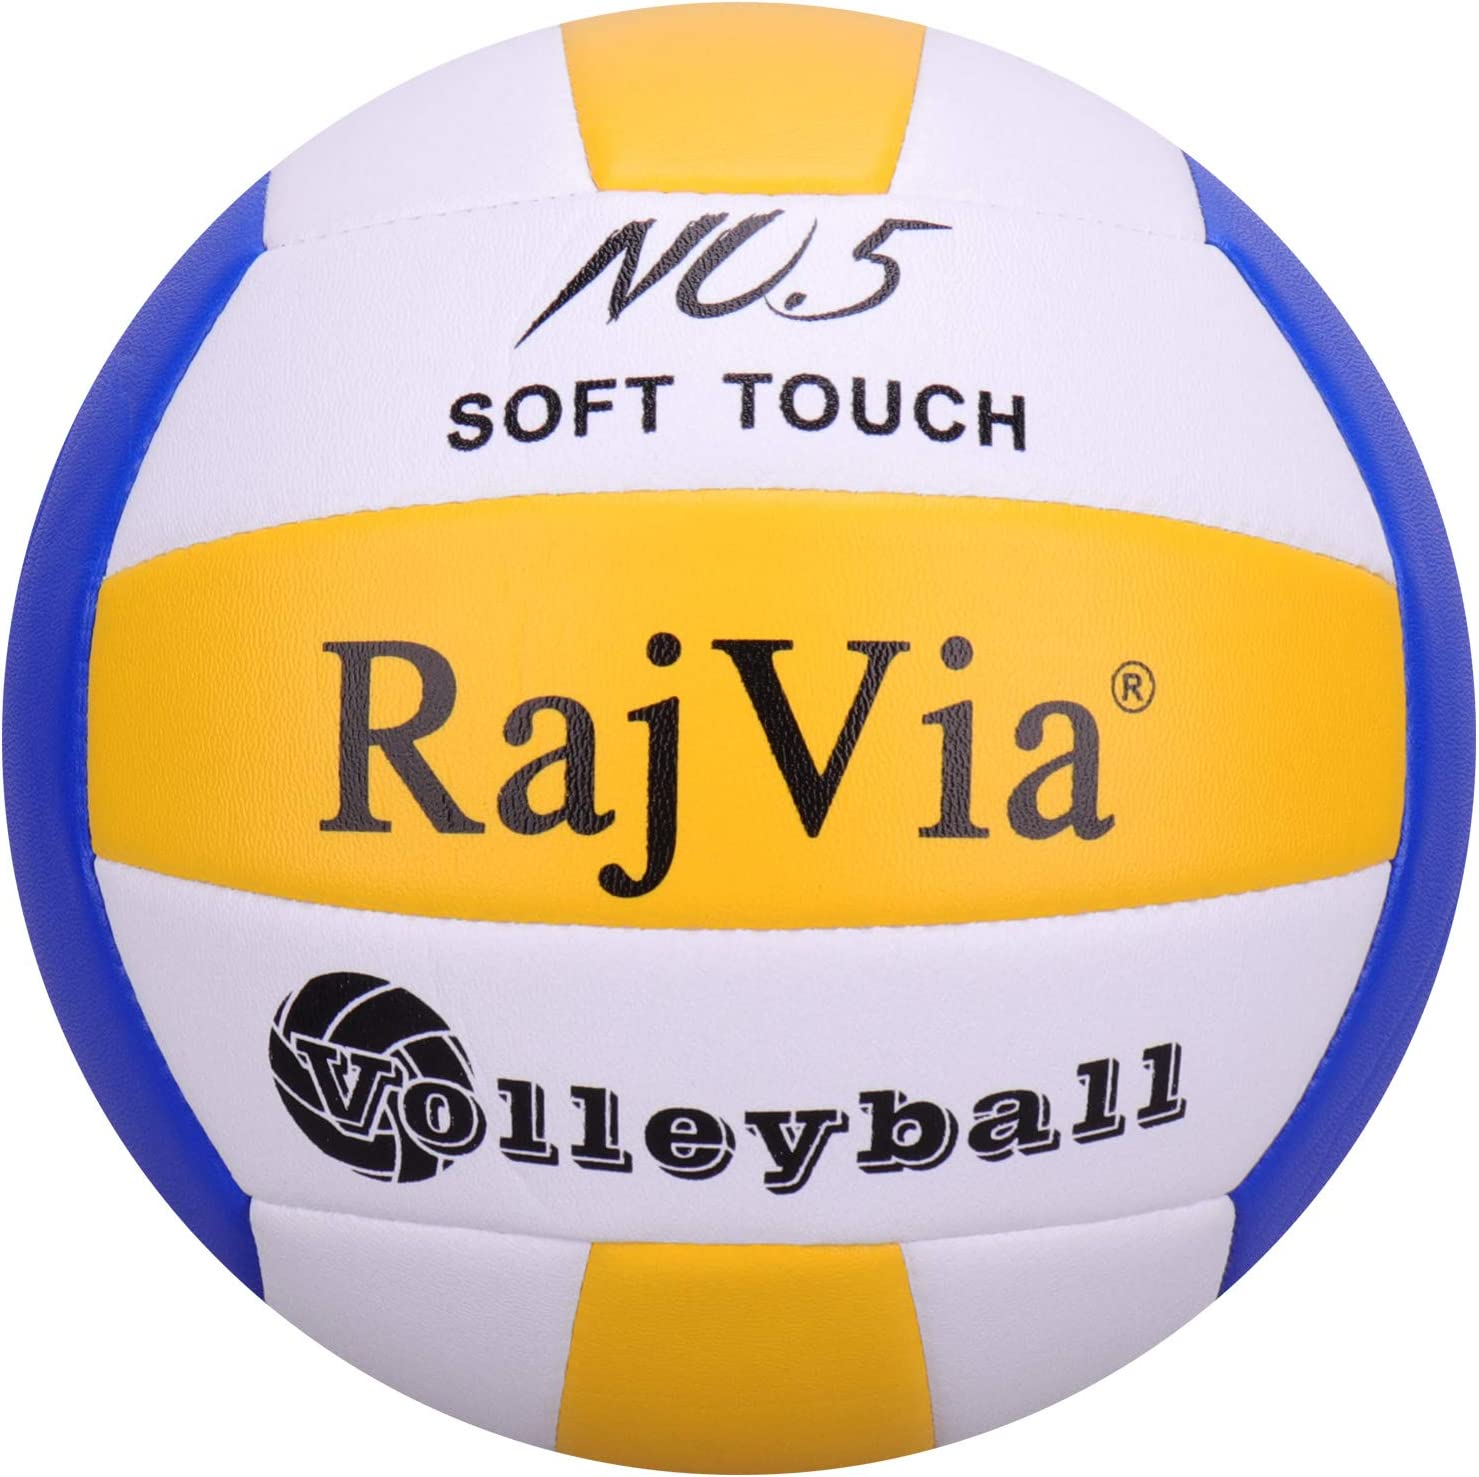 Rajvia Soft Touch Volleyball Official Size 5 Indoor Outdoor Beach Gym Game ball Synthetic Leather